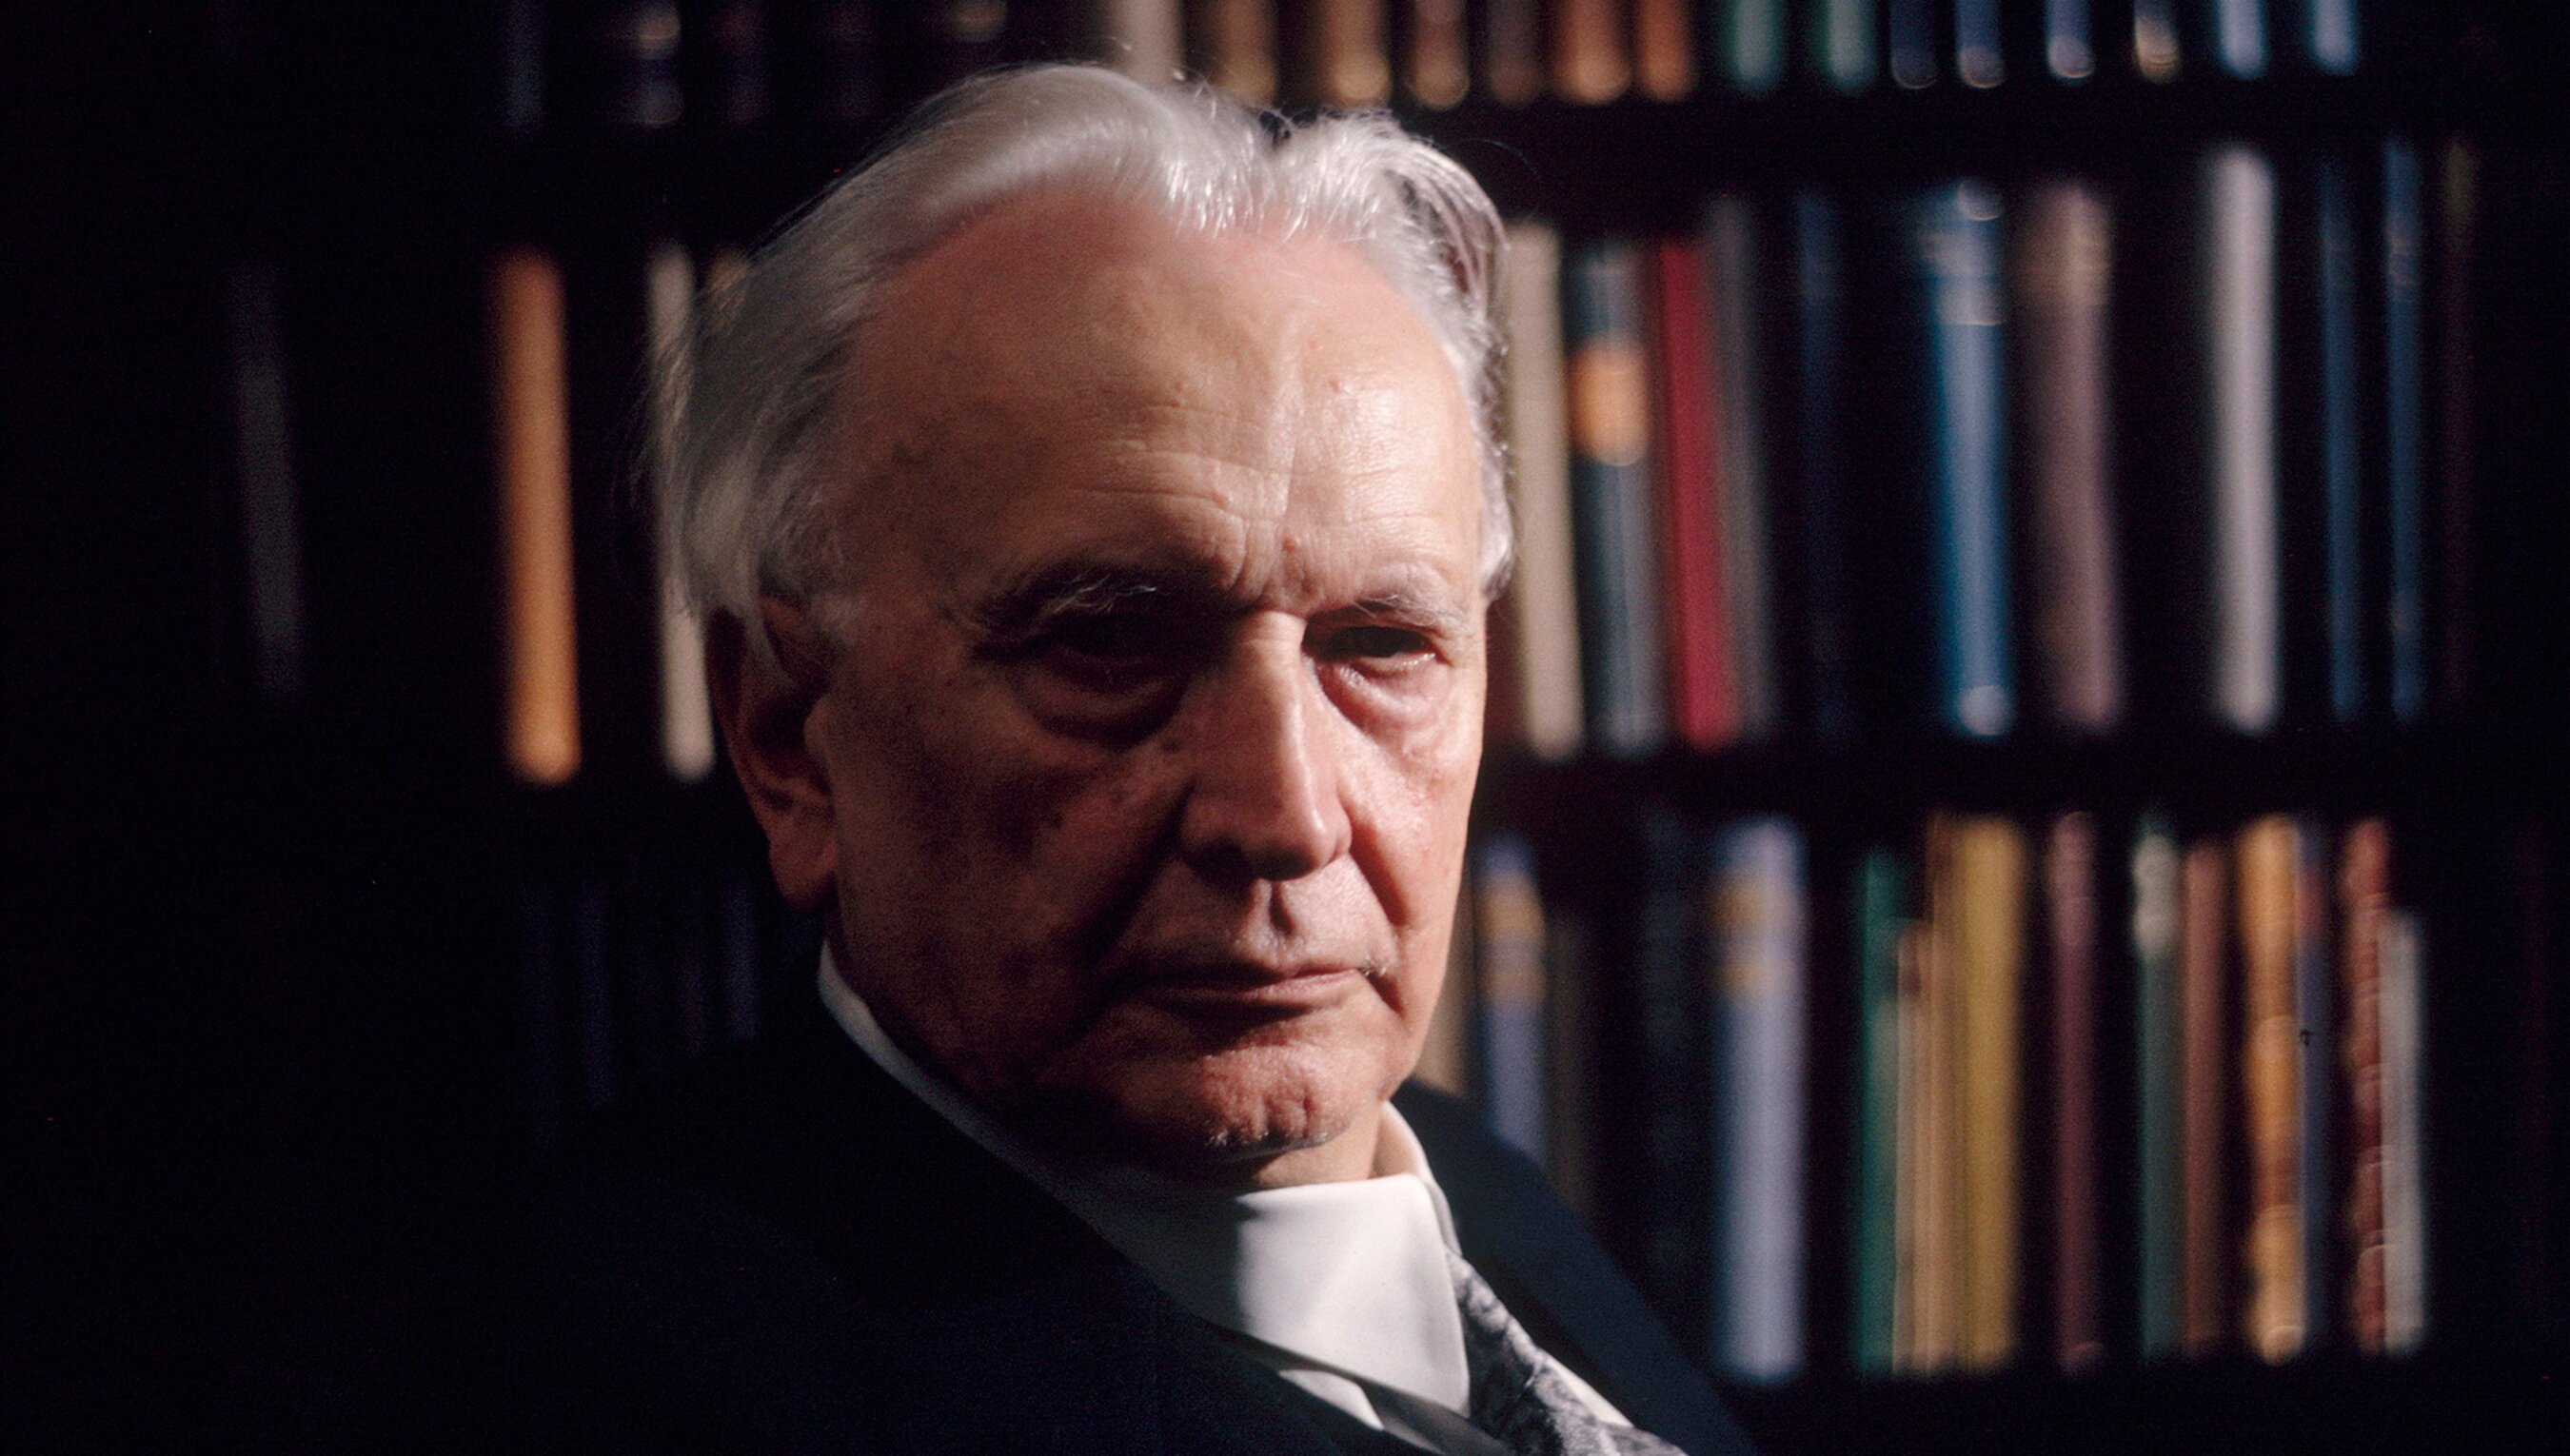 To Karl Jaspers, uncertainty is not to be overcome but understood | Psyche